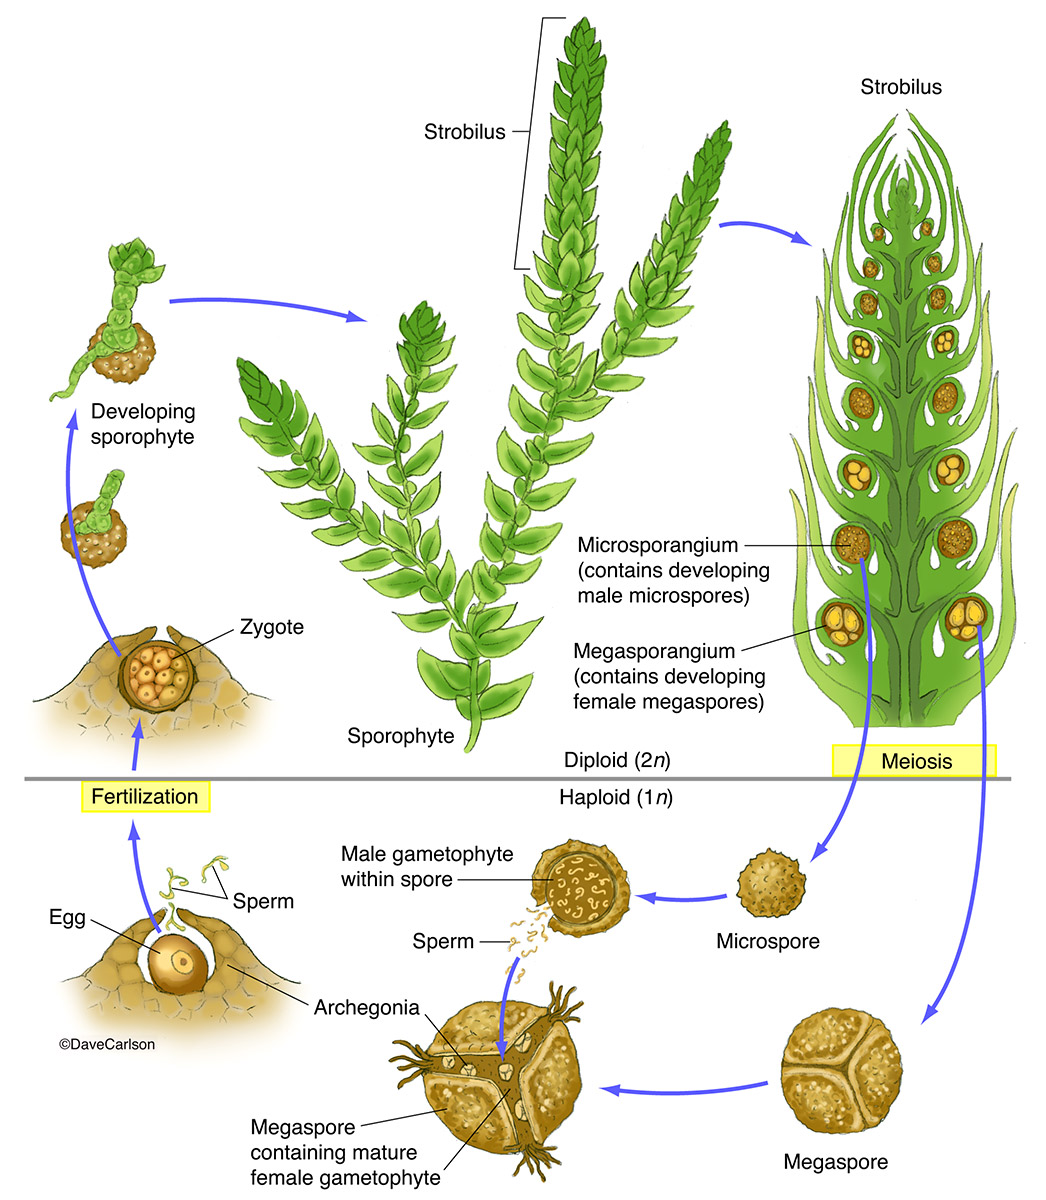 life cycle of moss plant diagram cat6 wiring 568a spike selaginella structure and